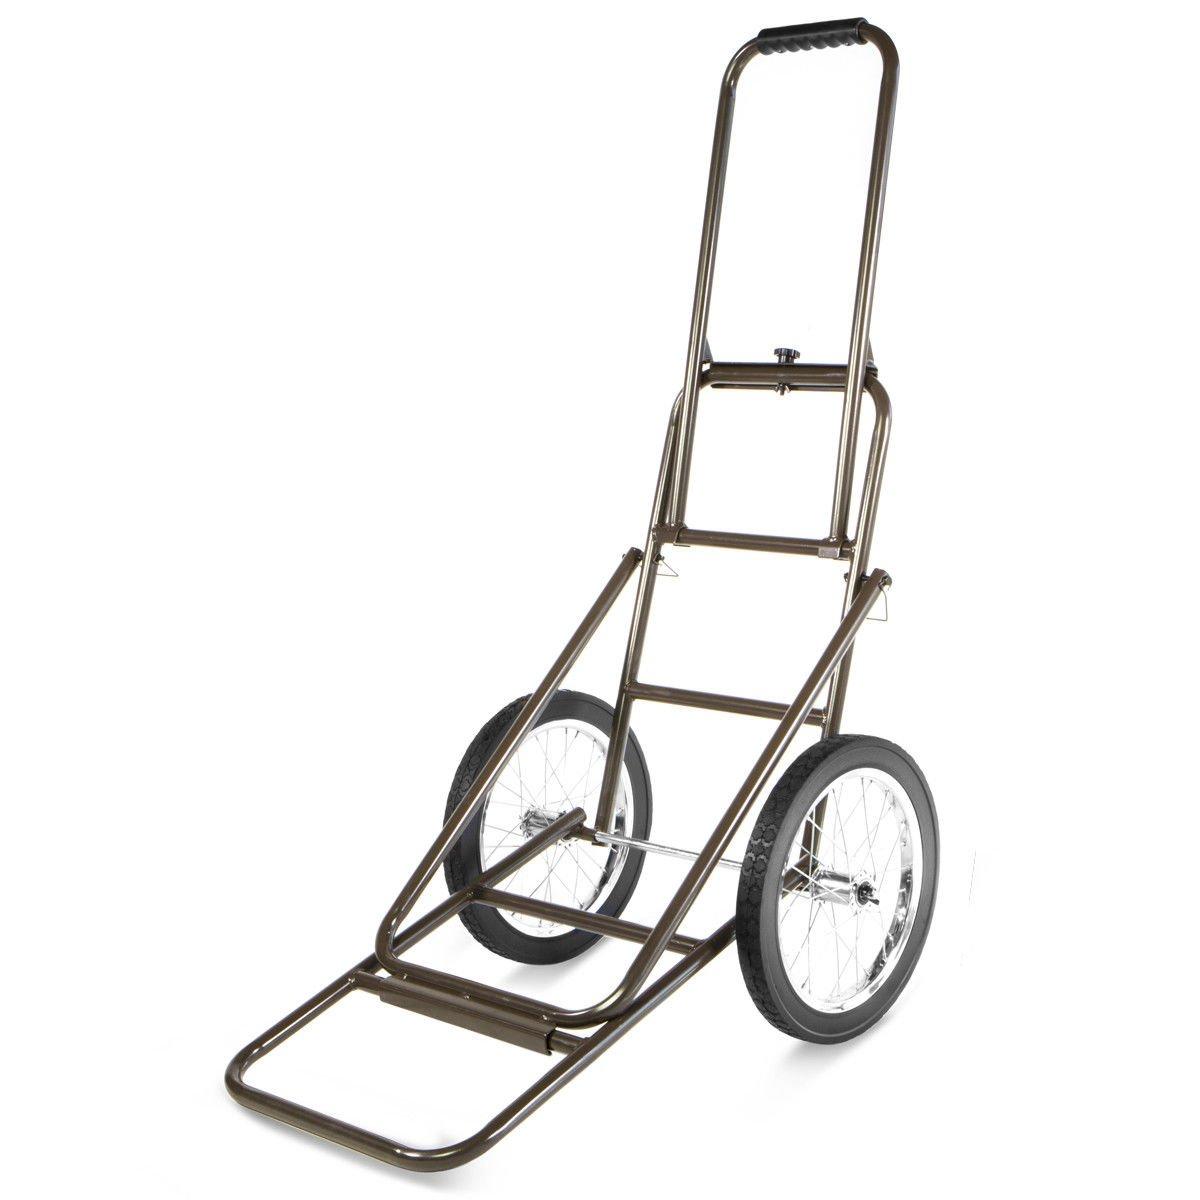 TimmyHouse Deer Cart Game Hauler Utility Hunting Accessories Gear Dolly Cart 500lb New